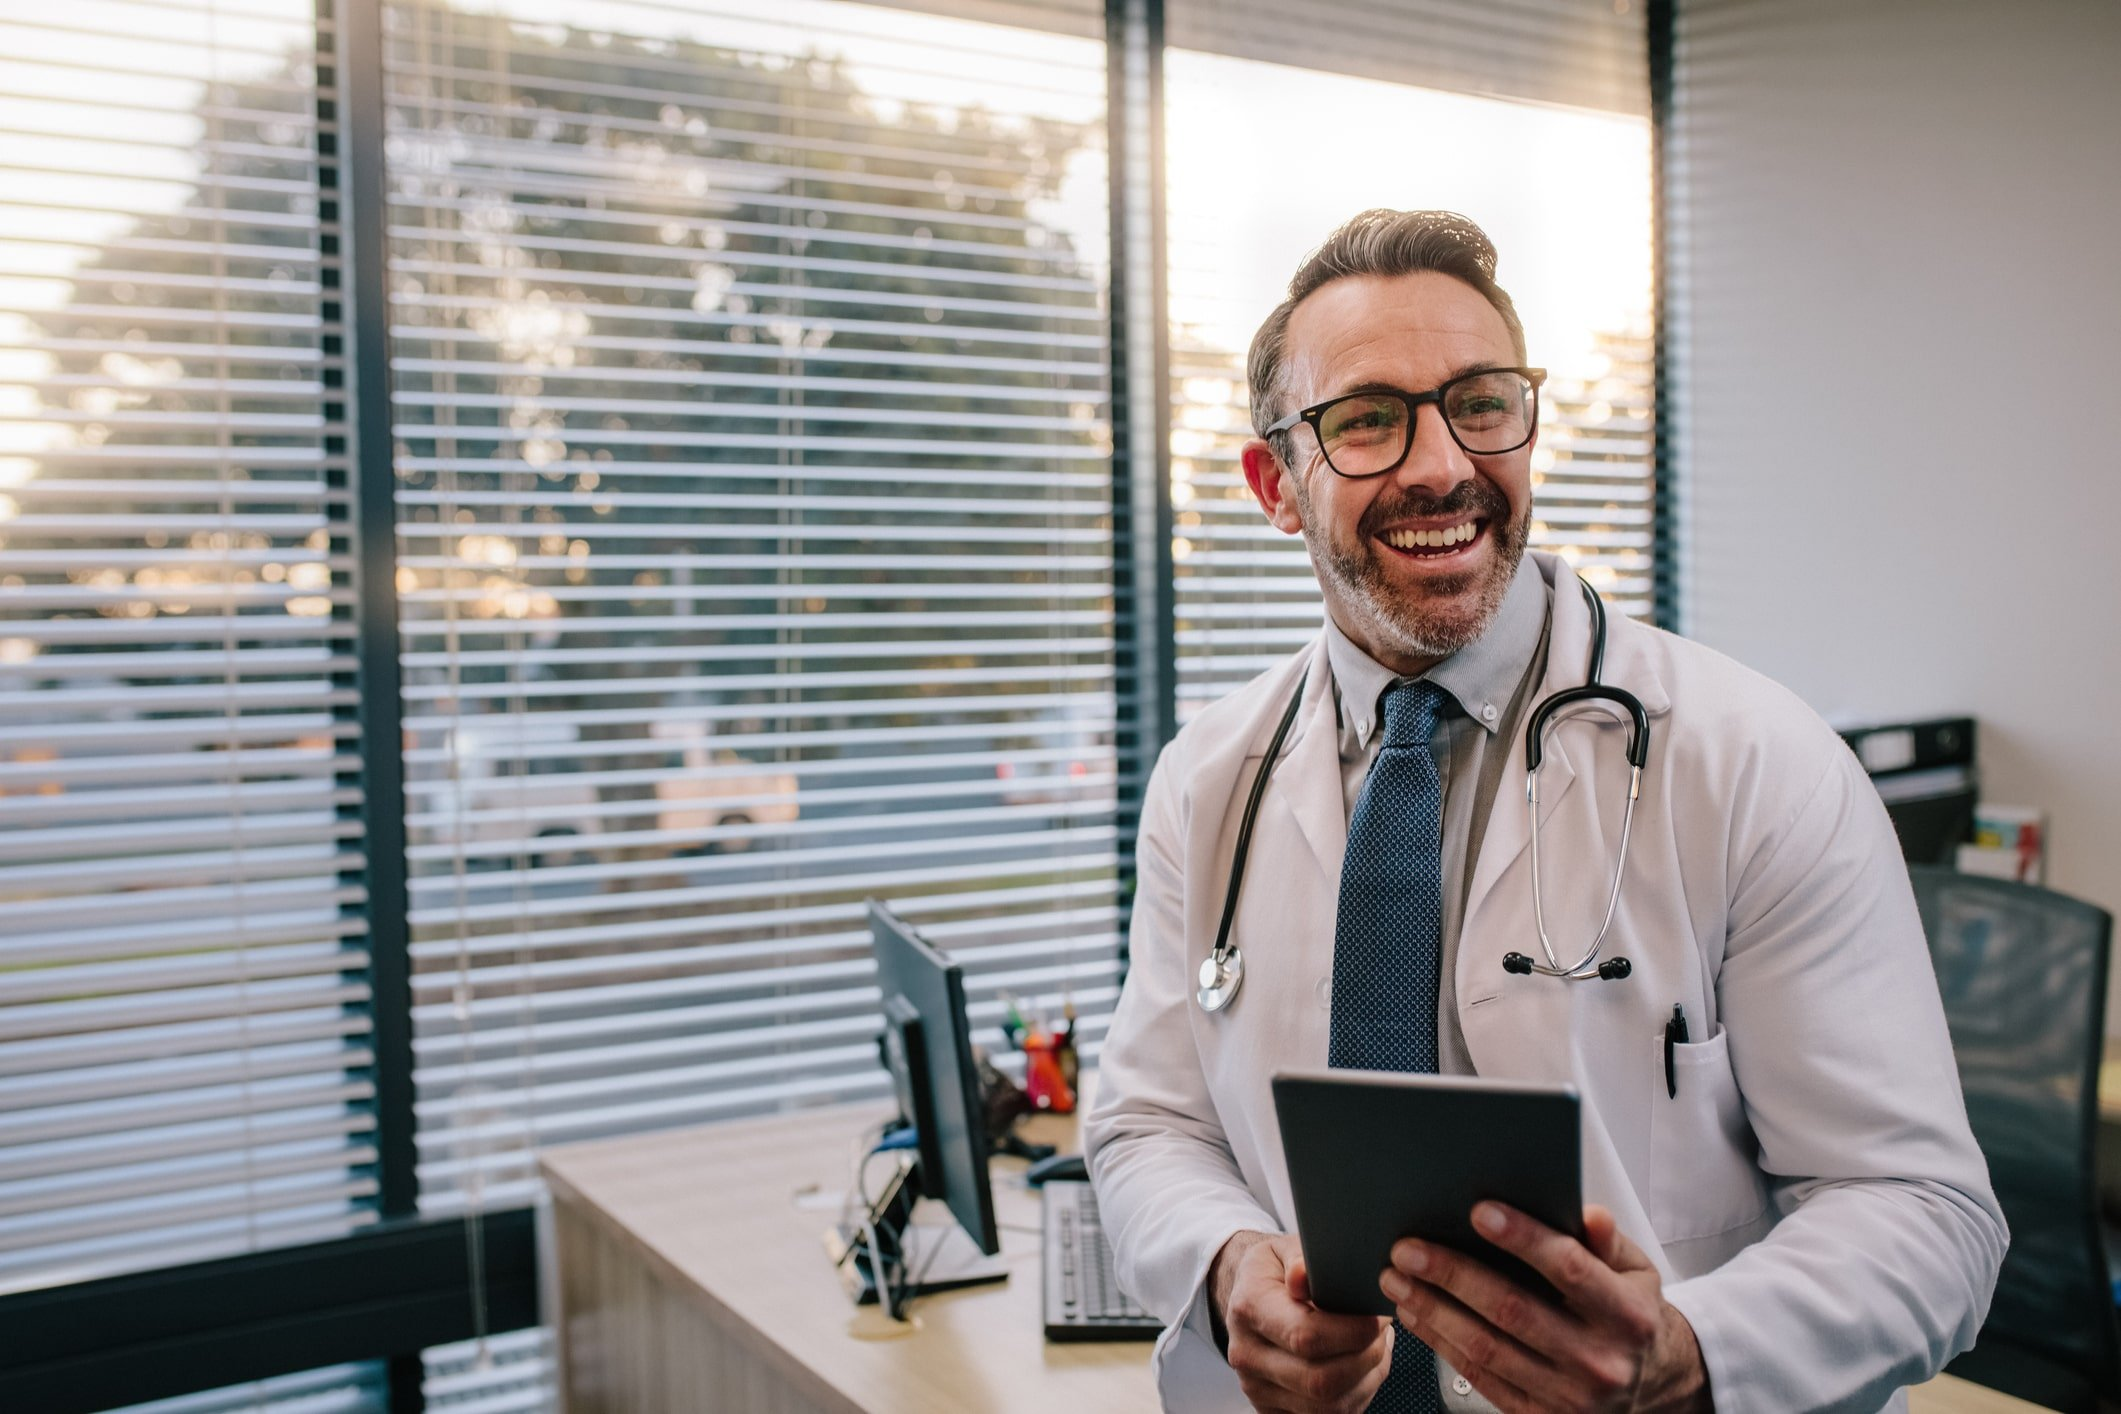 4 Ways Your Practice Can Compete with Retail Health Clinics